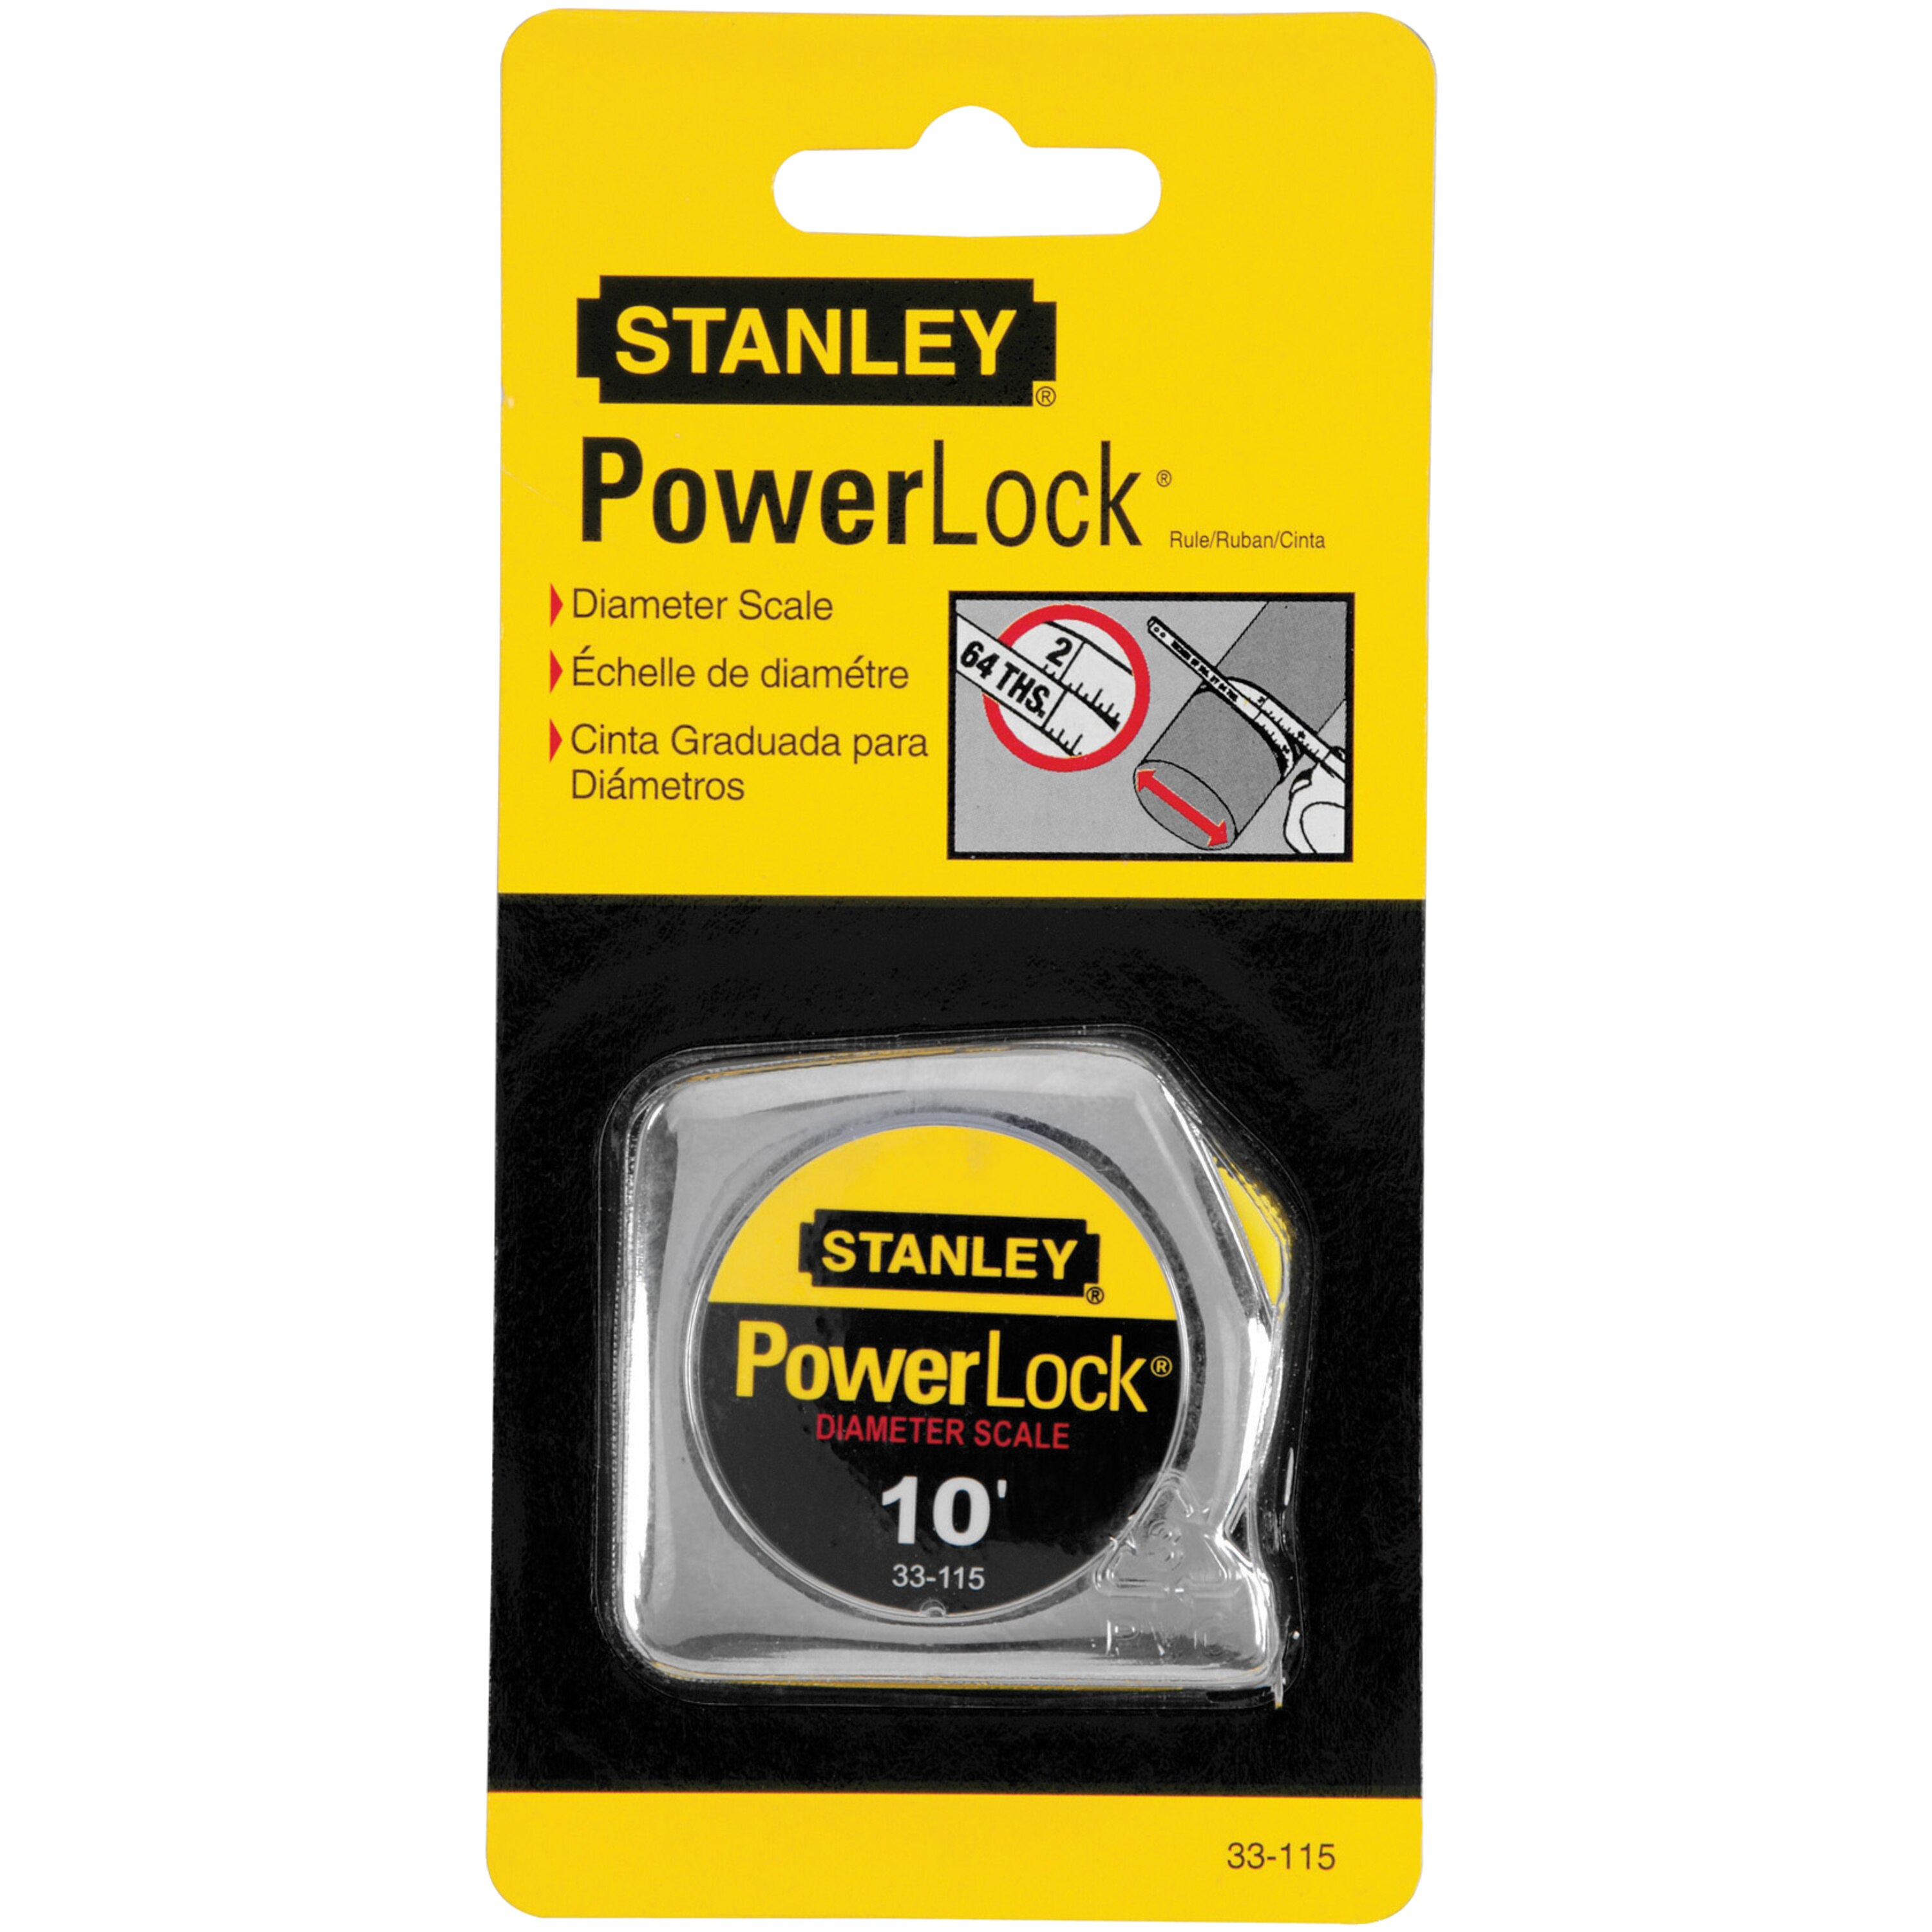 Stanley Tools - 10 ft PowerLock Pocket Tape Measure with Diameter Scale - 33-115